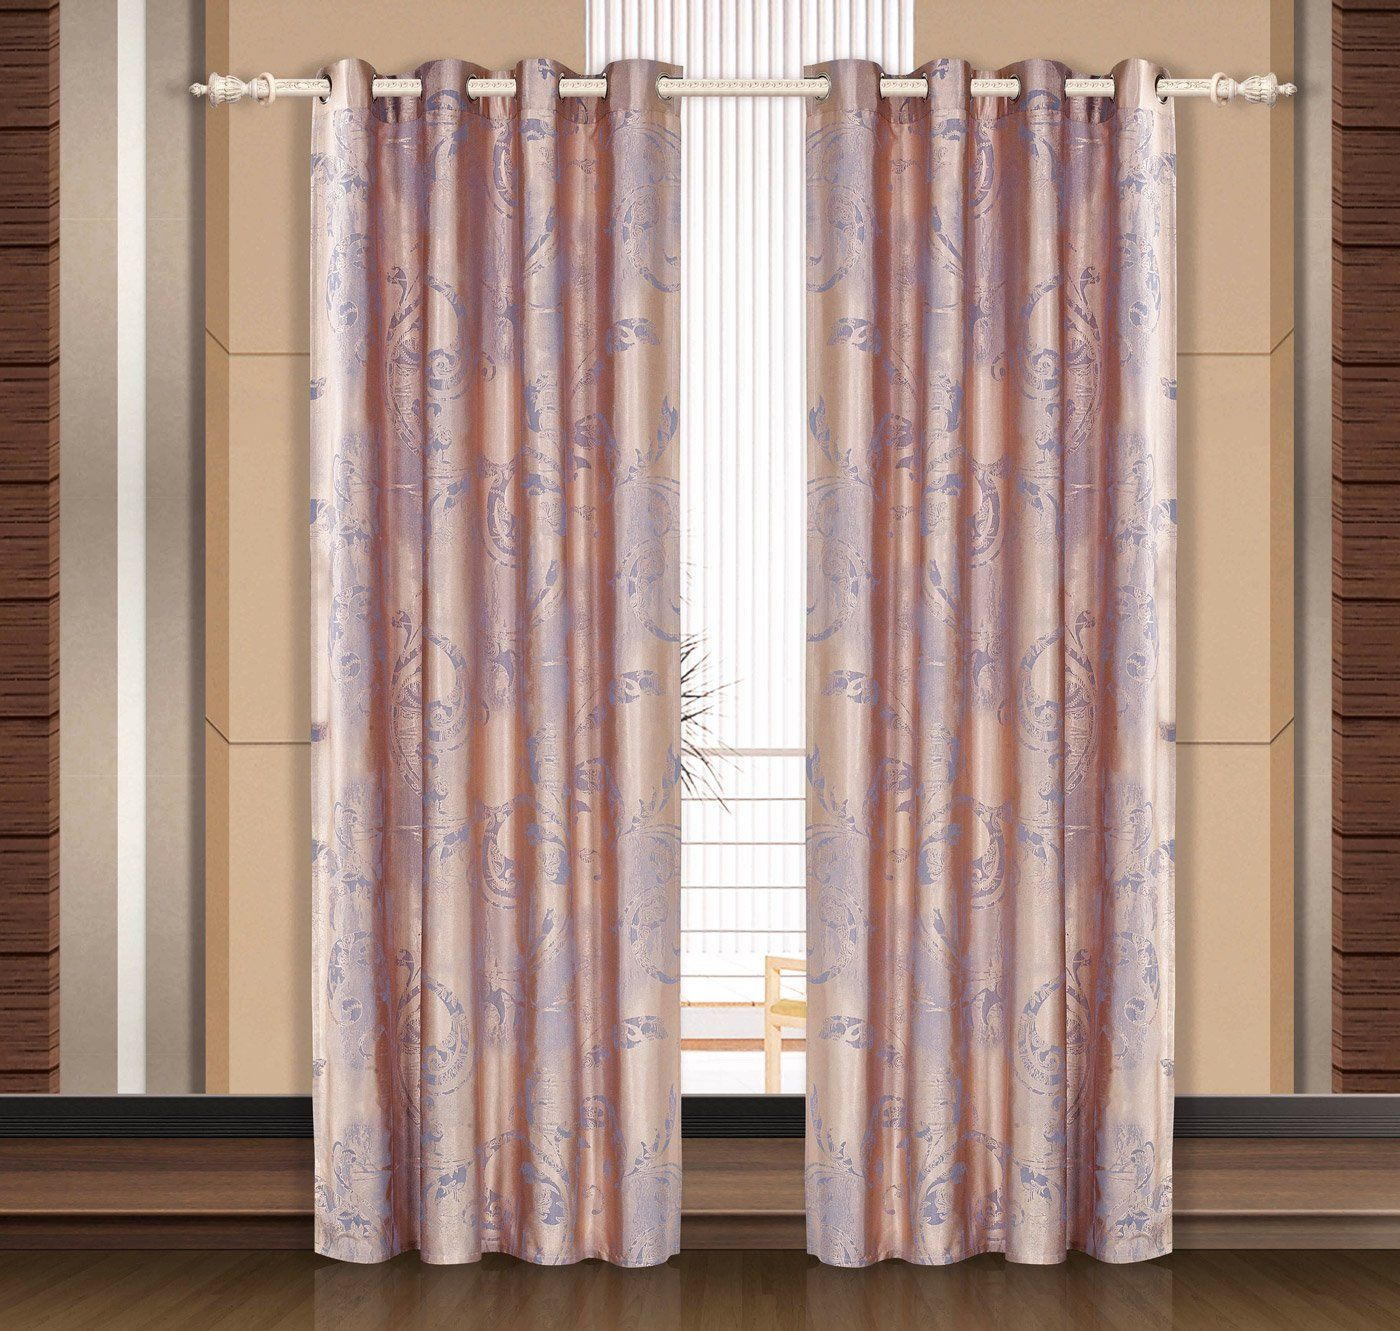 Bed against window with curtains  curtains u drapes window treatments dolce mela dmc  window and